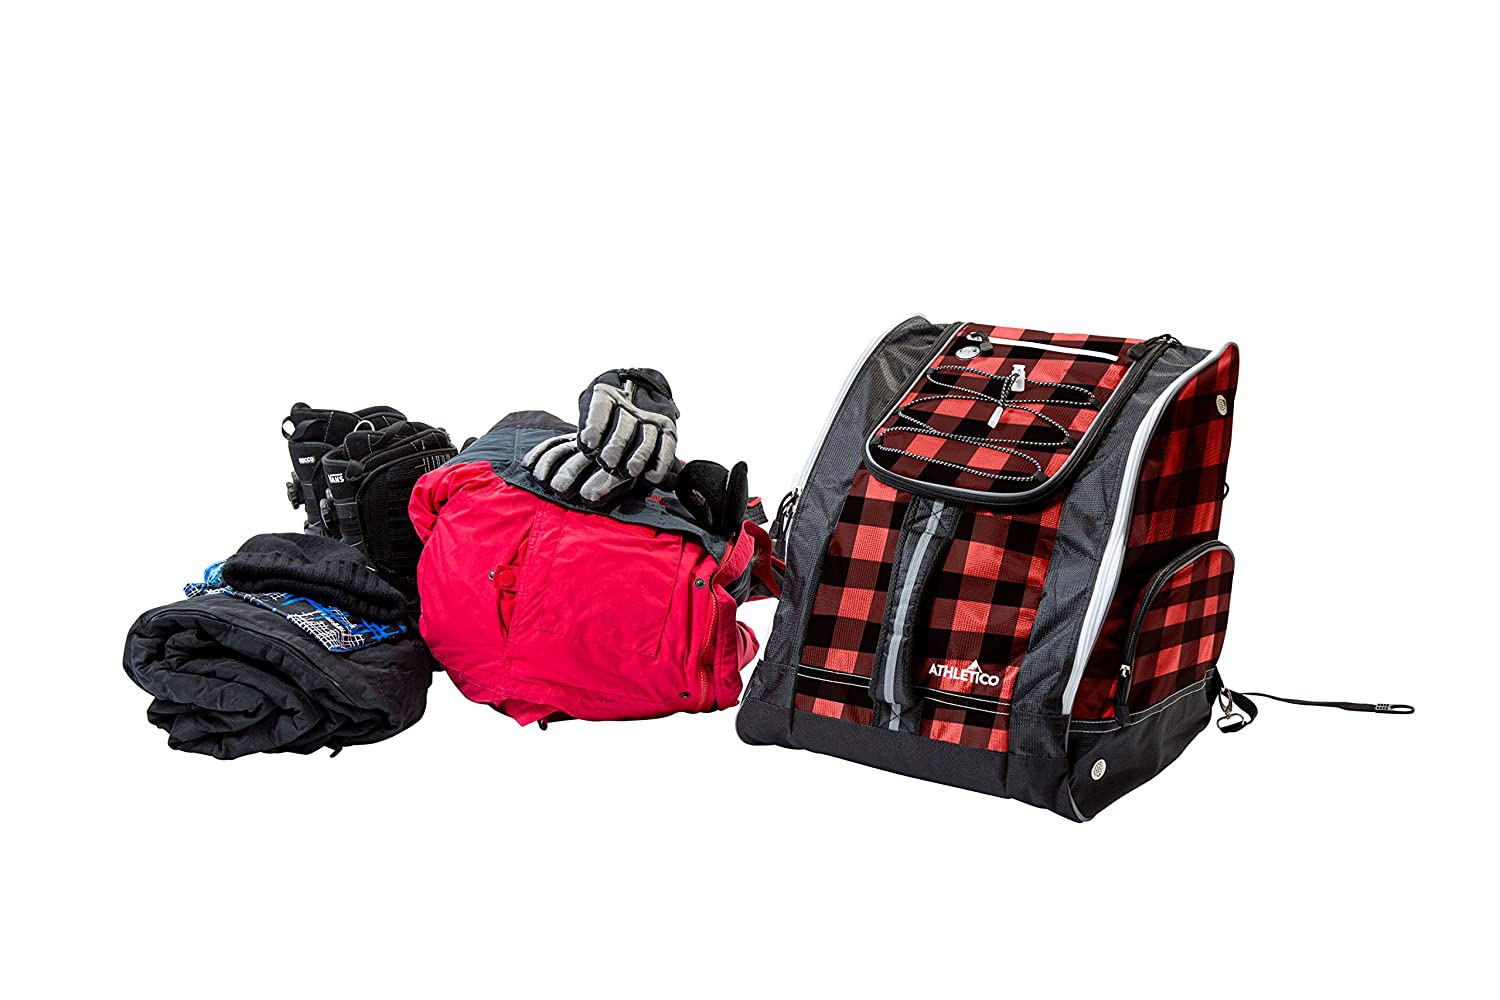 Goggles Stores Gear Including Jacket Helmet Athletico Ski Boot Bag Gloves /& Accessories Venting and Grommets for Snow Drainage Skiing and Snowboarding Travel Luggage